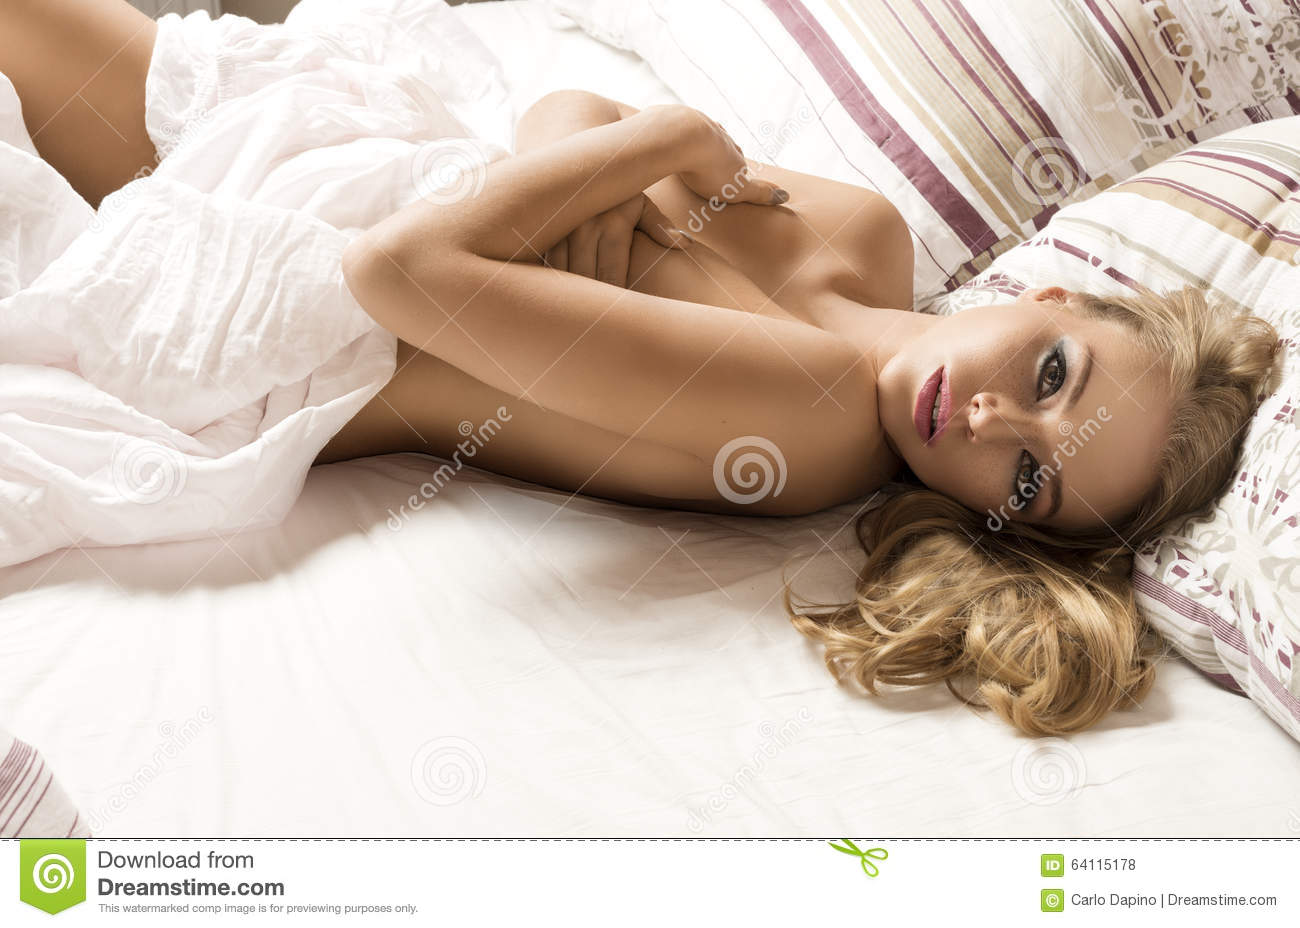 Hot girl covering naked body with hands Nude Sensual Girl On Bed Stock Photo Image Of Glamour 64115178